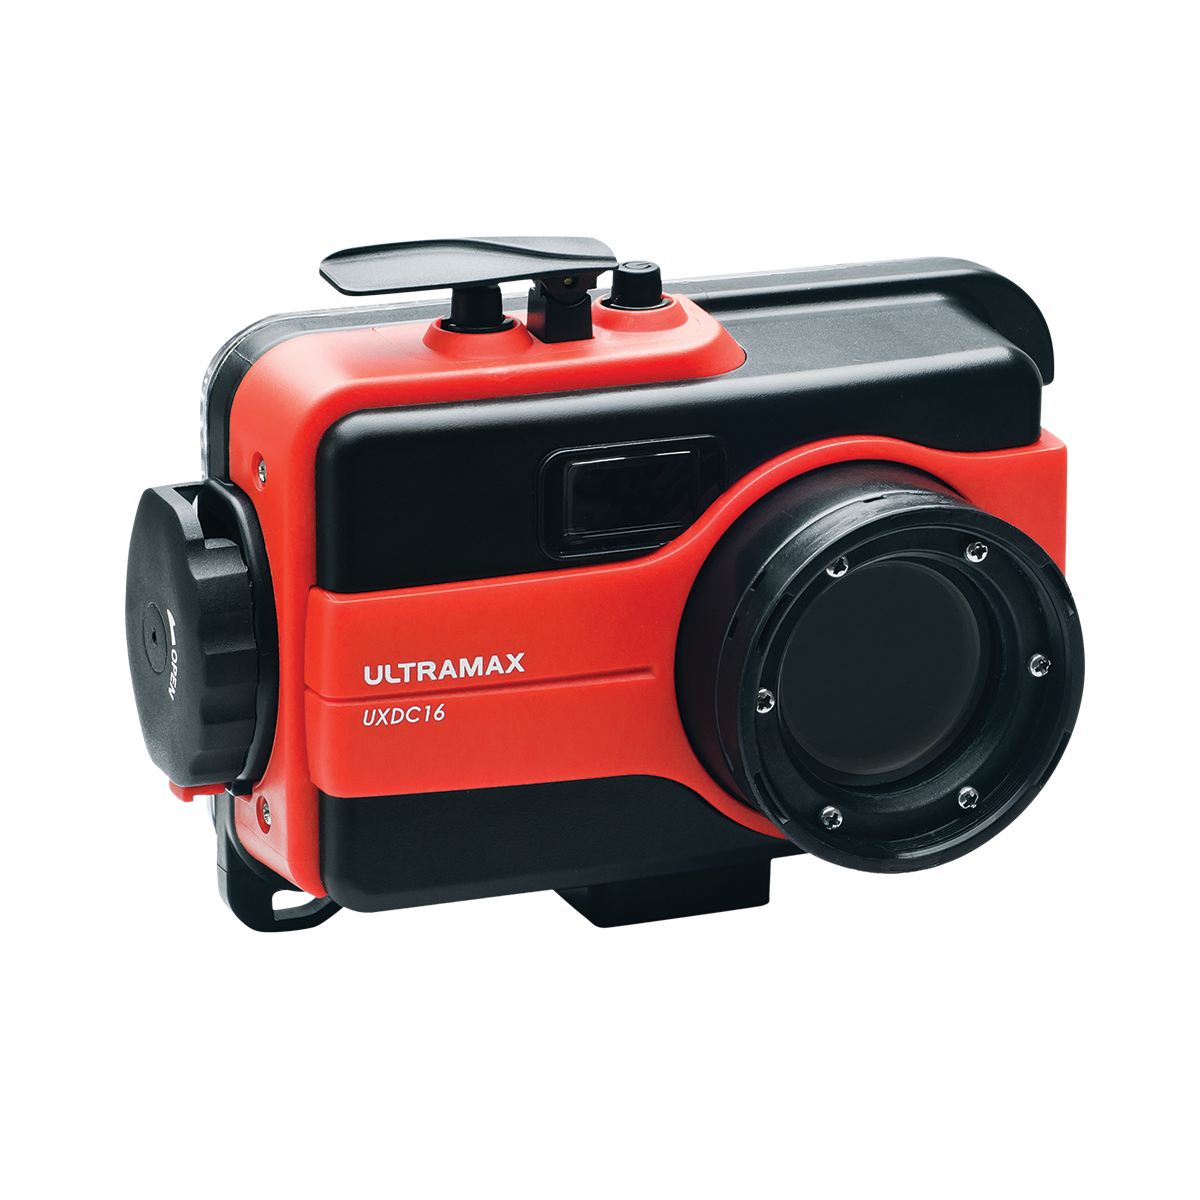 Replacement Waterproof Housing for UXDC-16 Digital Camera - red